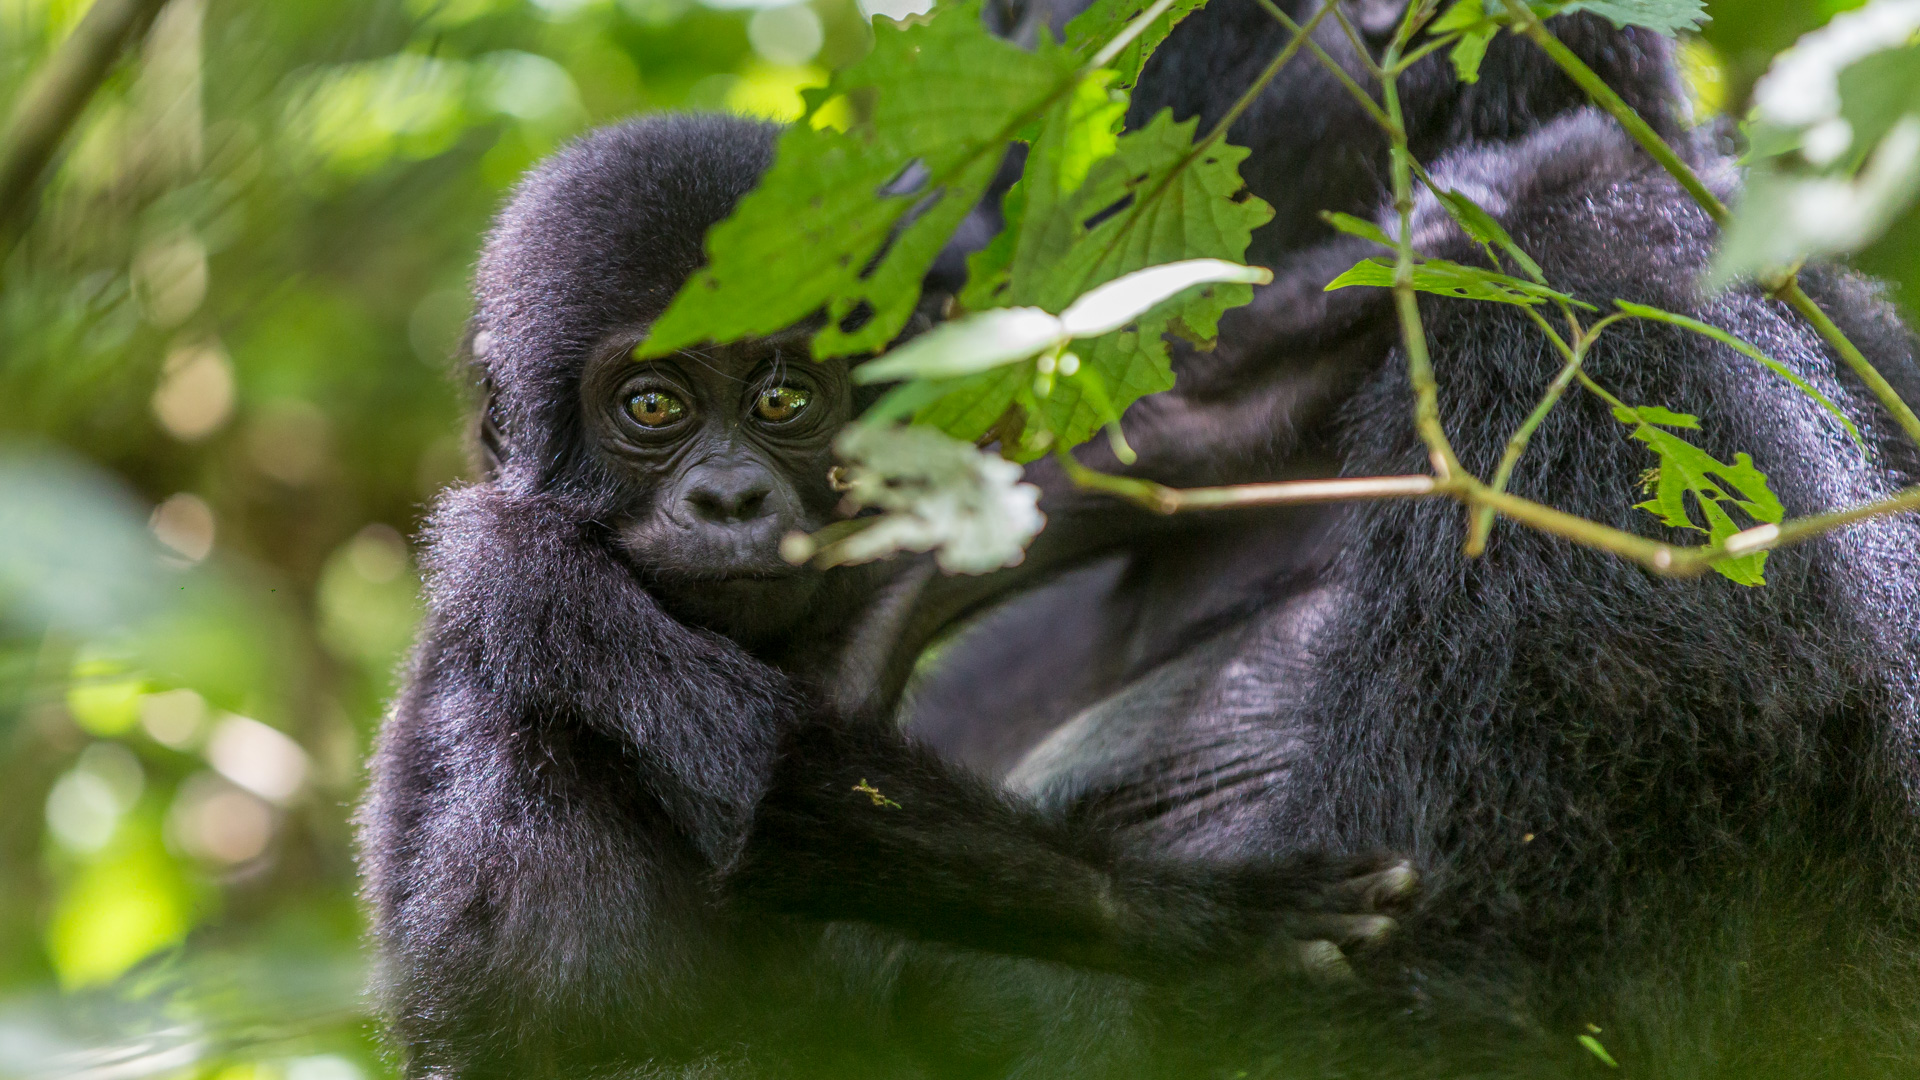 Tiny Gorilla with his/her mother